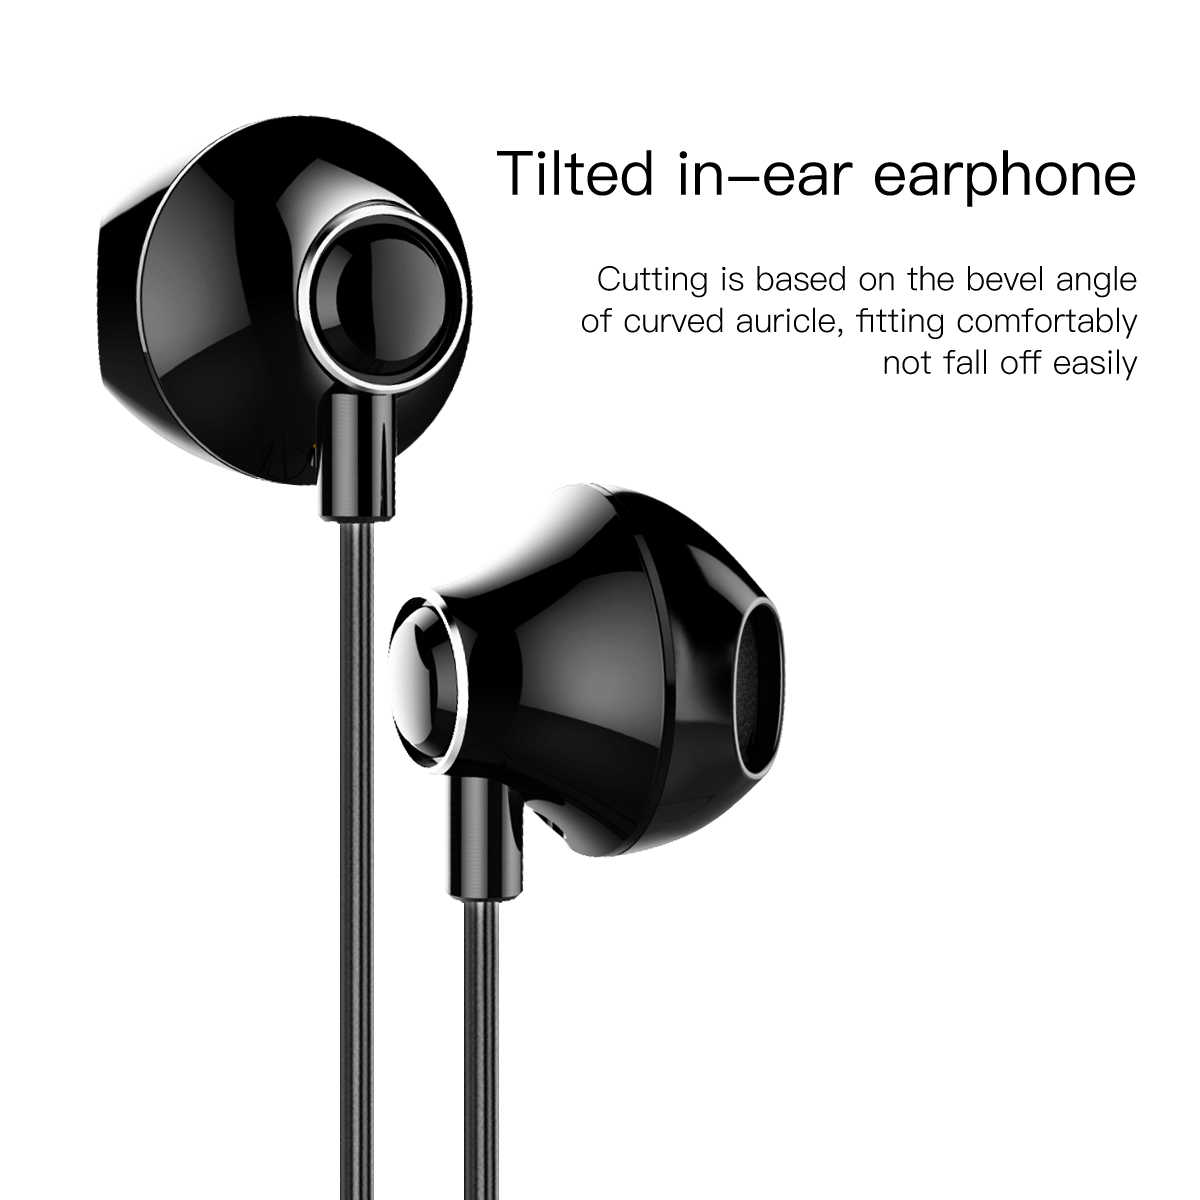 baseus wired earphone for phone in ear earphone with mic stereo headset earbuds earpiece for samsung  [ 1200 x 1200 Pixel ]